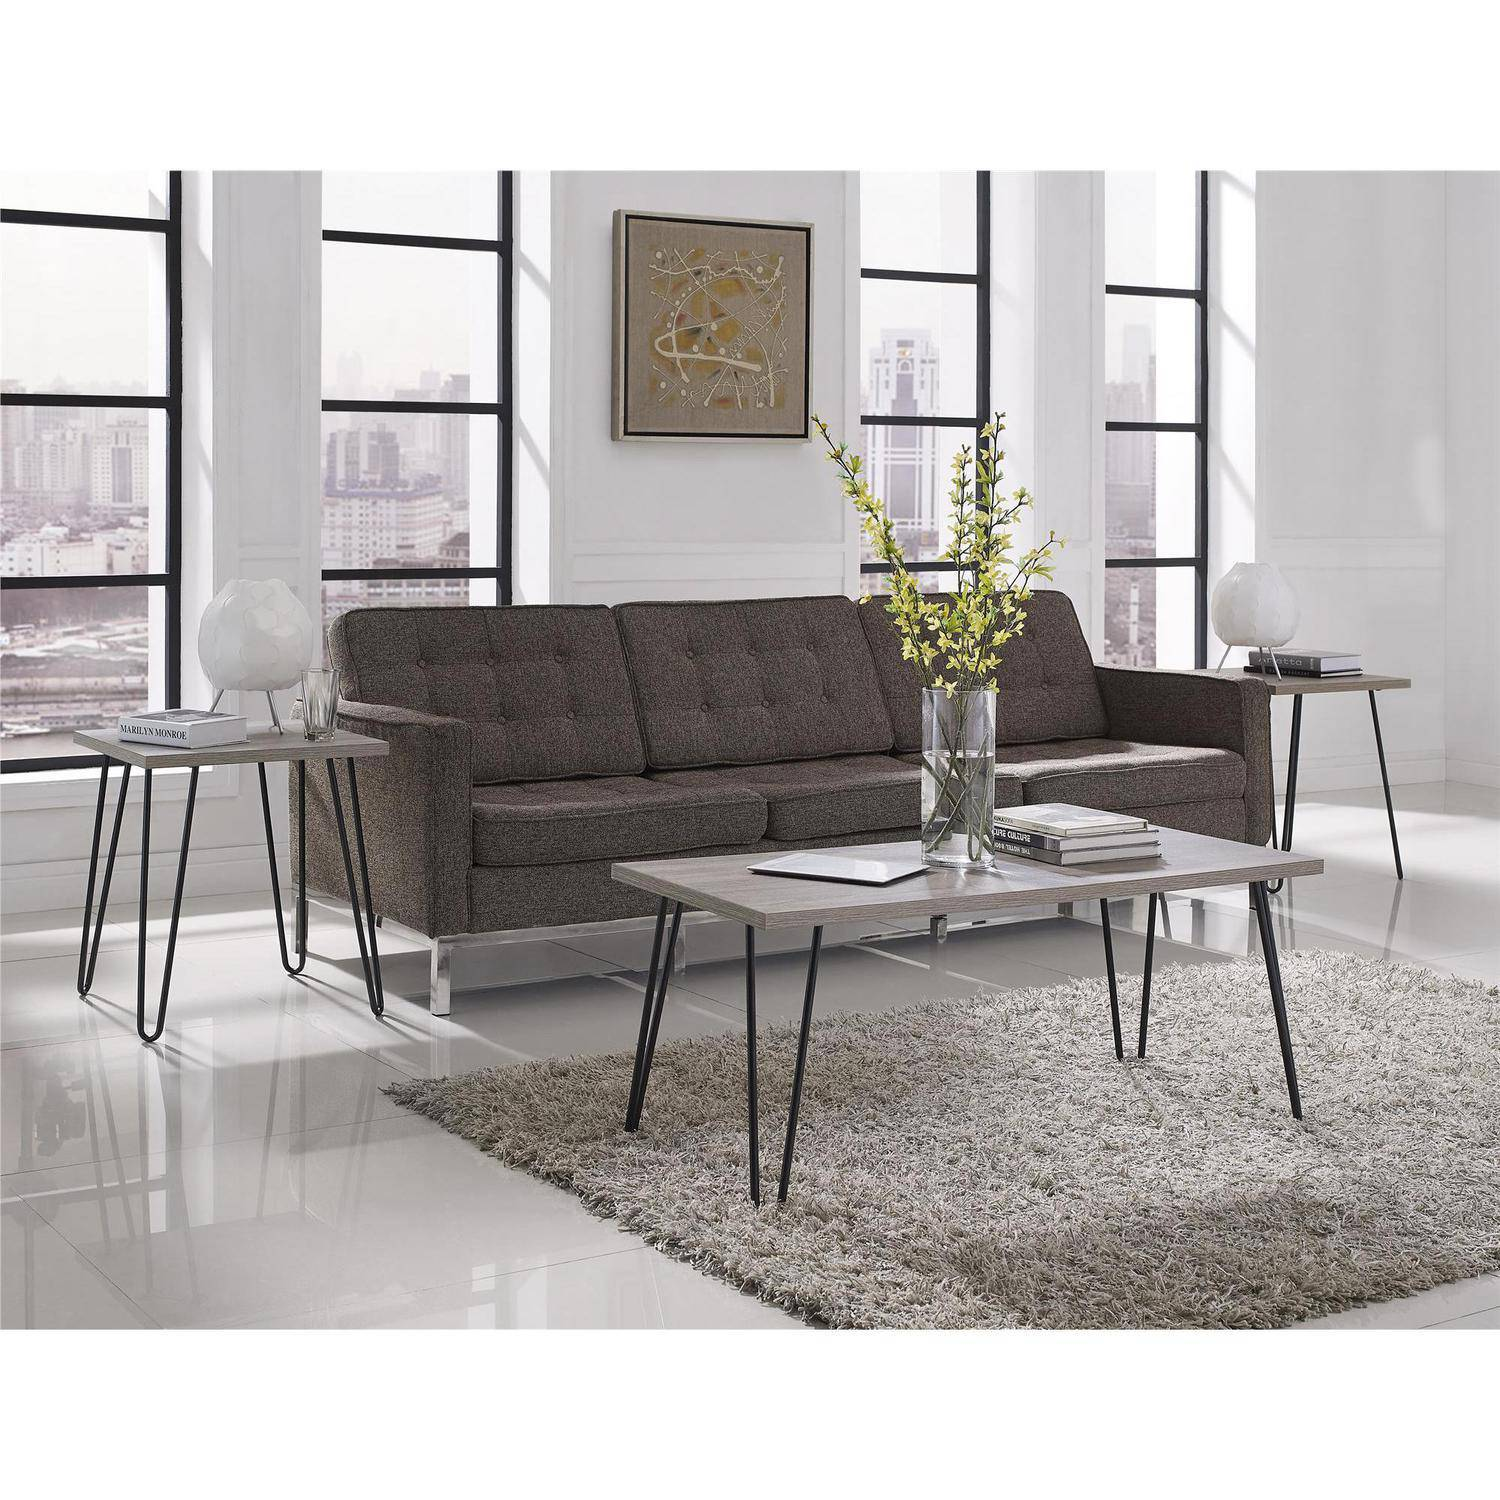 Superbe Ameriwood Home Owen Retro Coffee Table, Distressed Gray Oak/Gunmetal Gray    Walmart.com